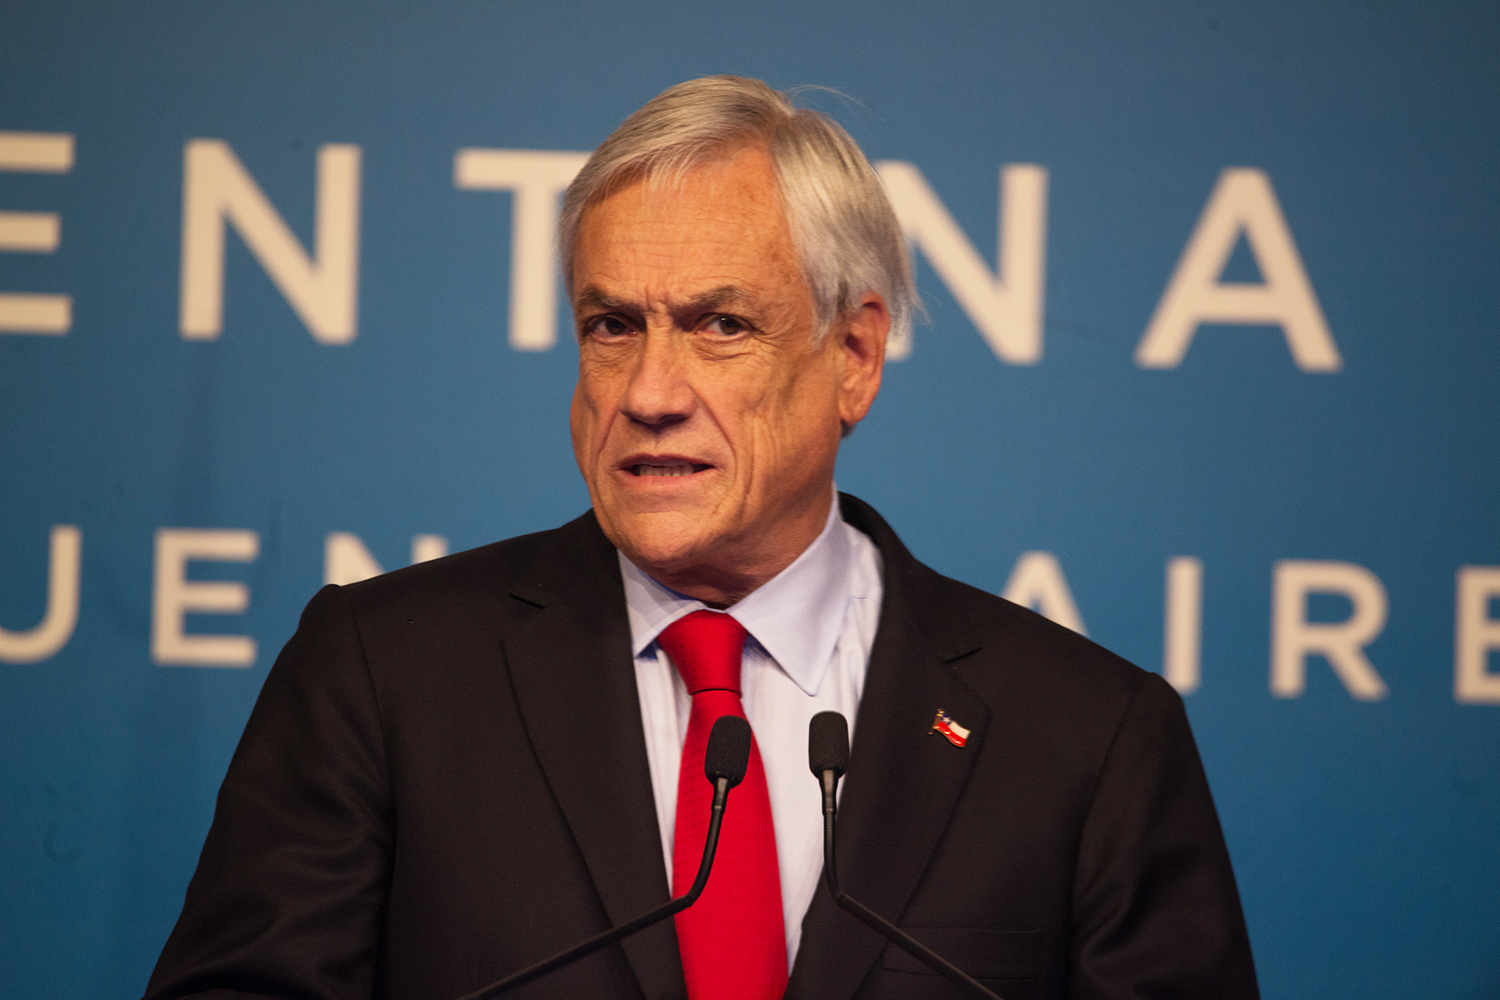 O presidente do Chile, Sebastián Piñera